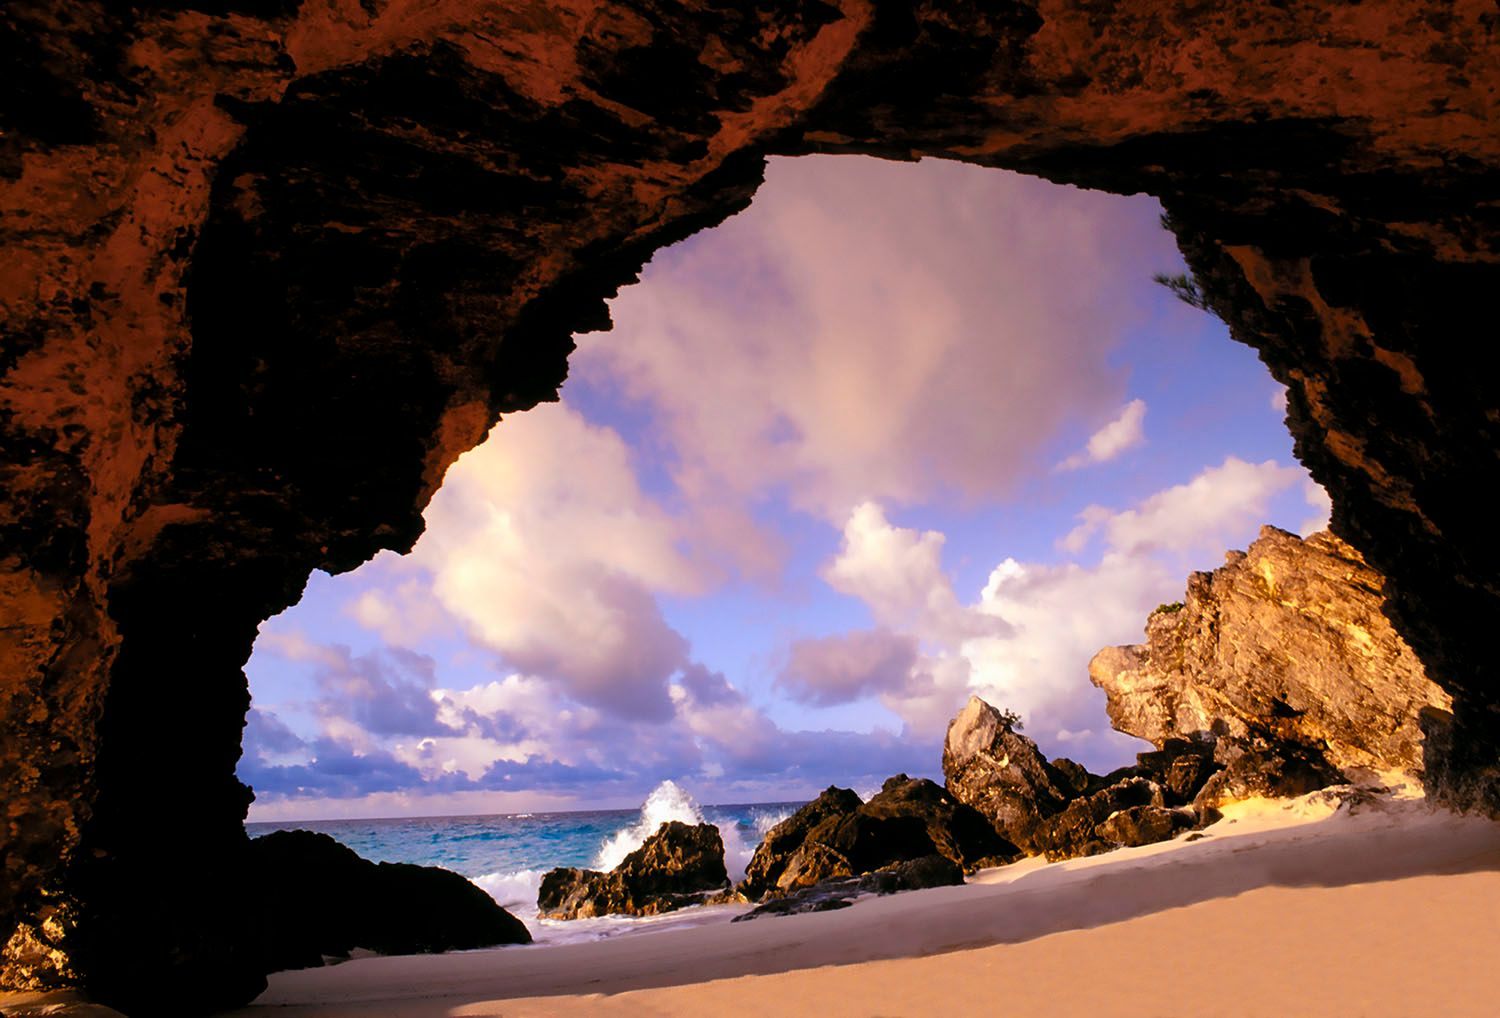 Bermuda Rocks and Sky